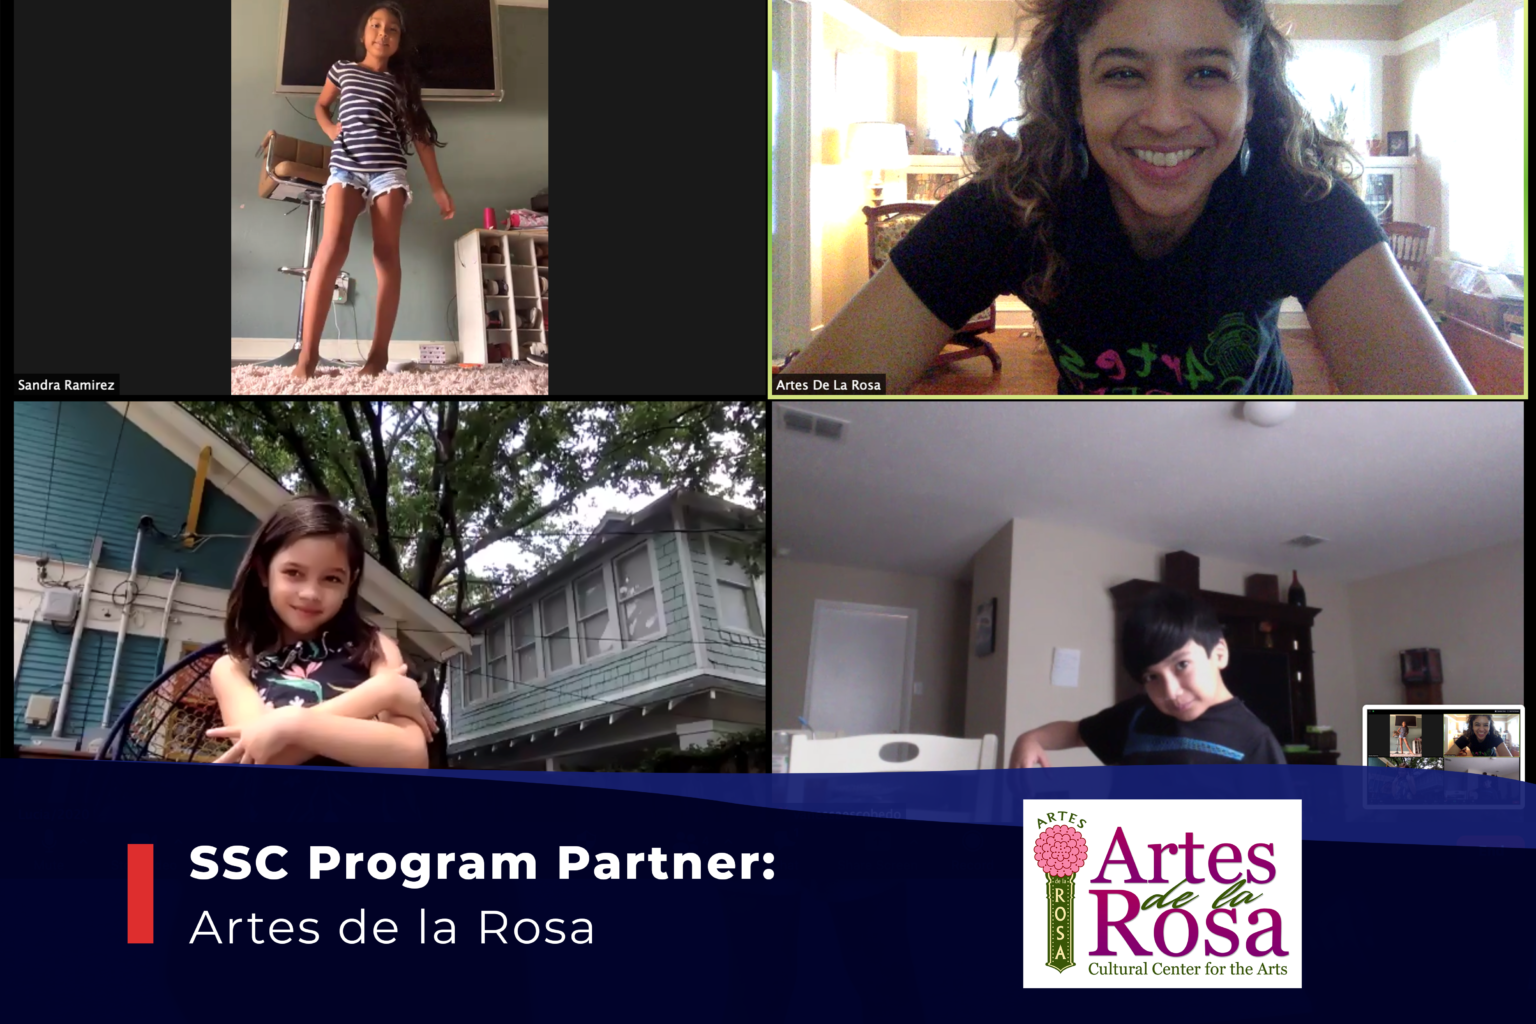 SSC-Program-Partner-Artes-de-la-Rosa